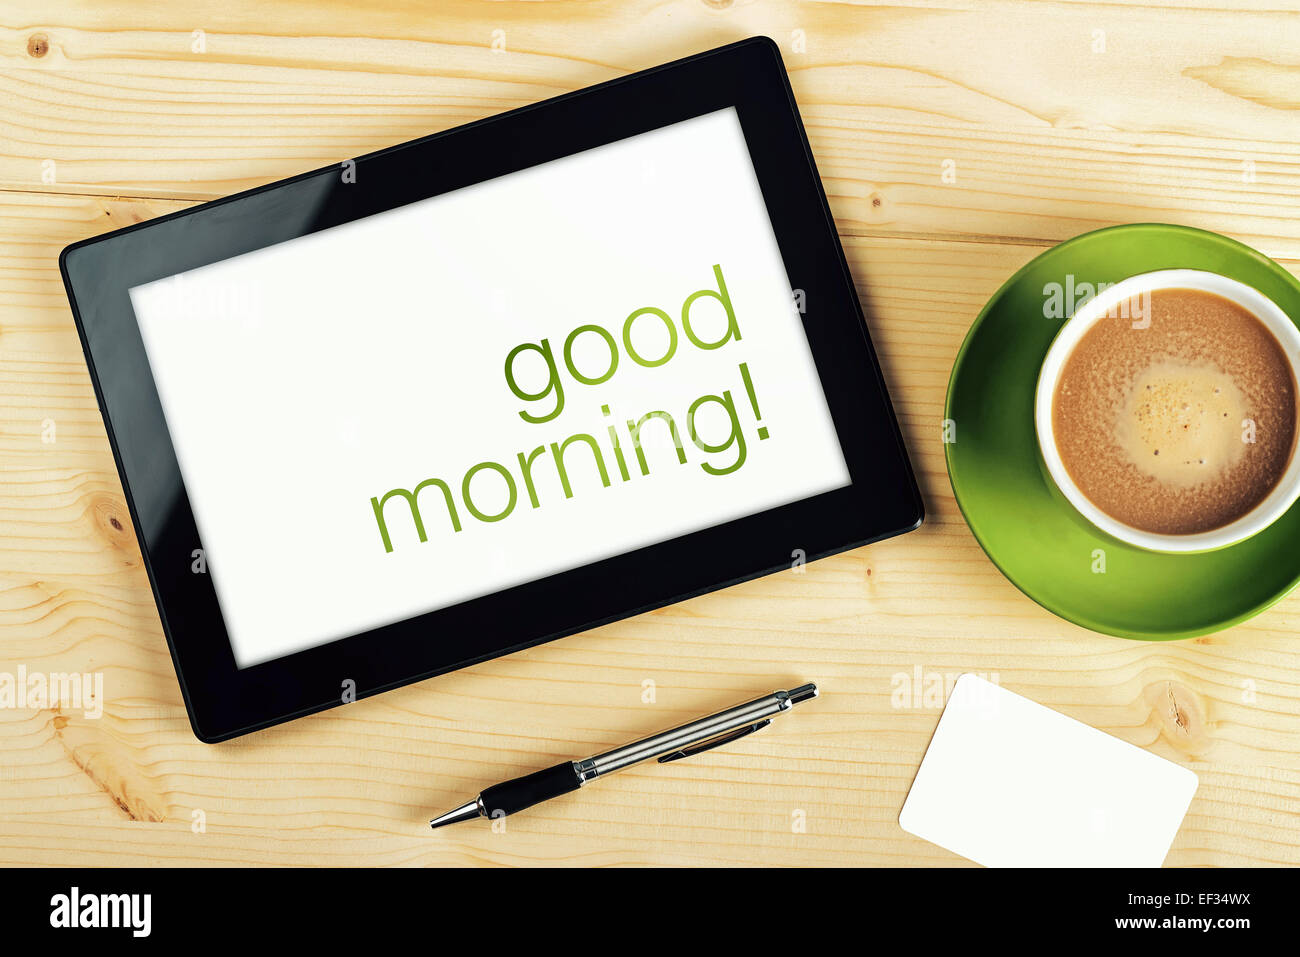 Good Morning Message on Tablet Computer Screen on Office Table. - Stock Image